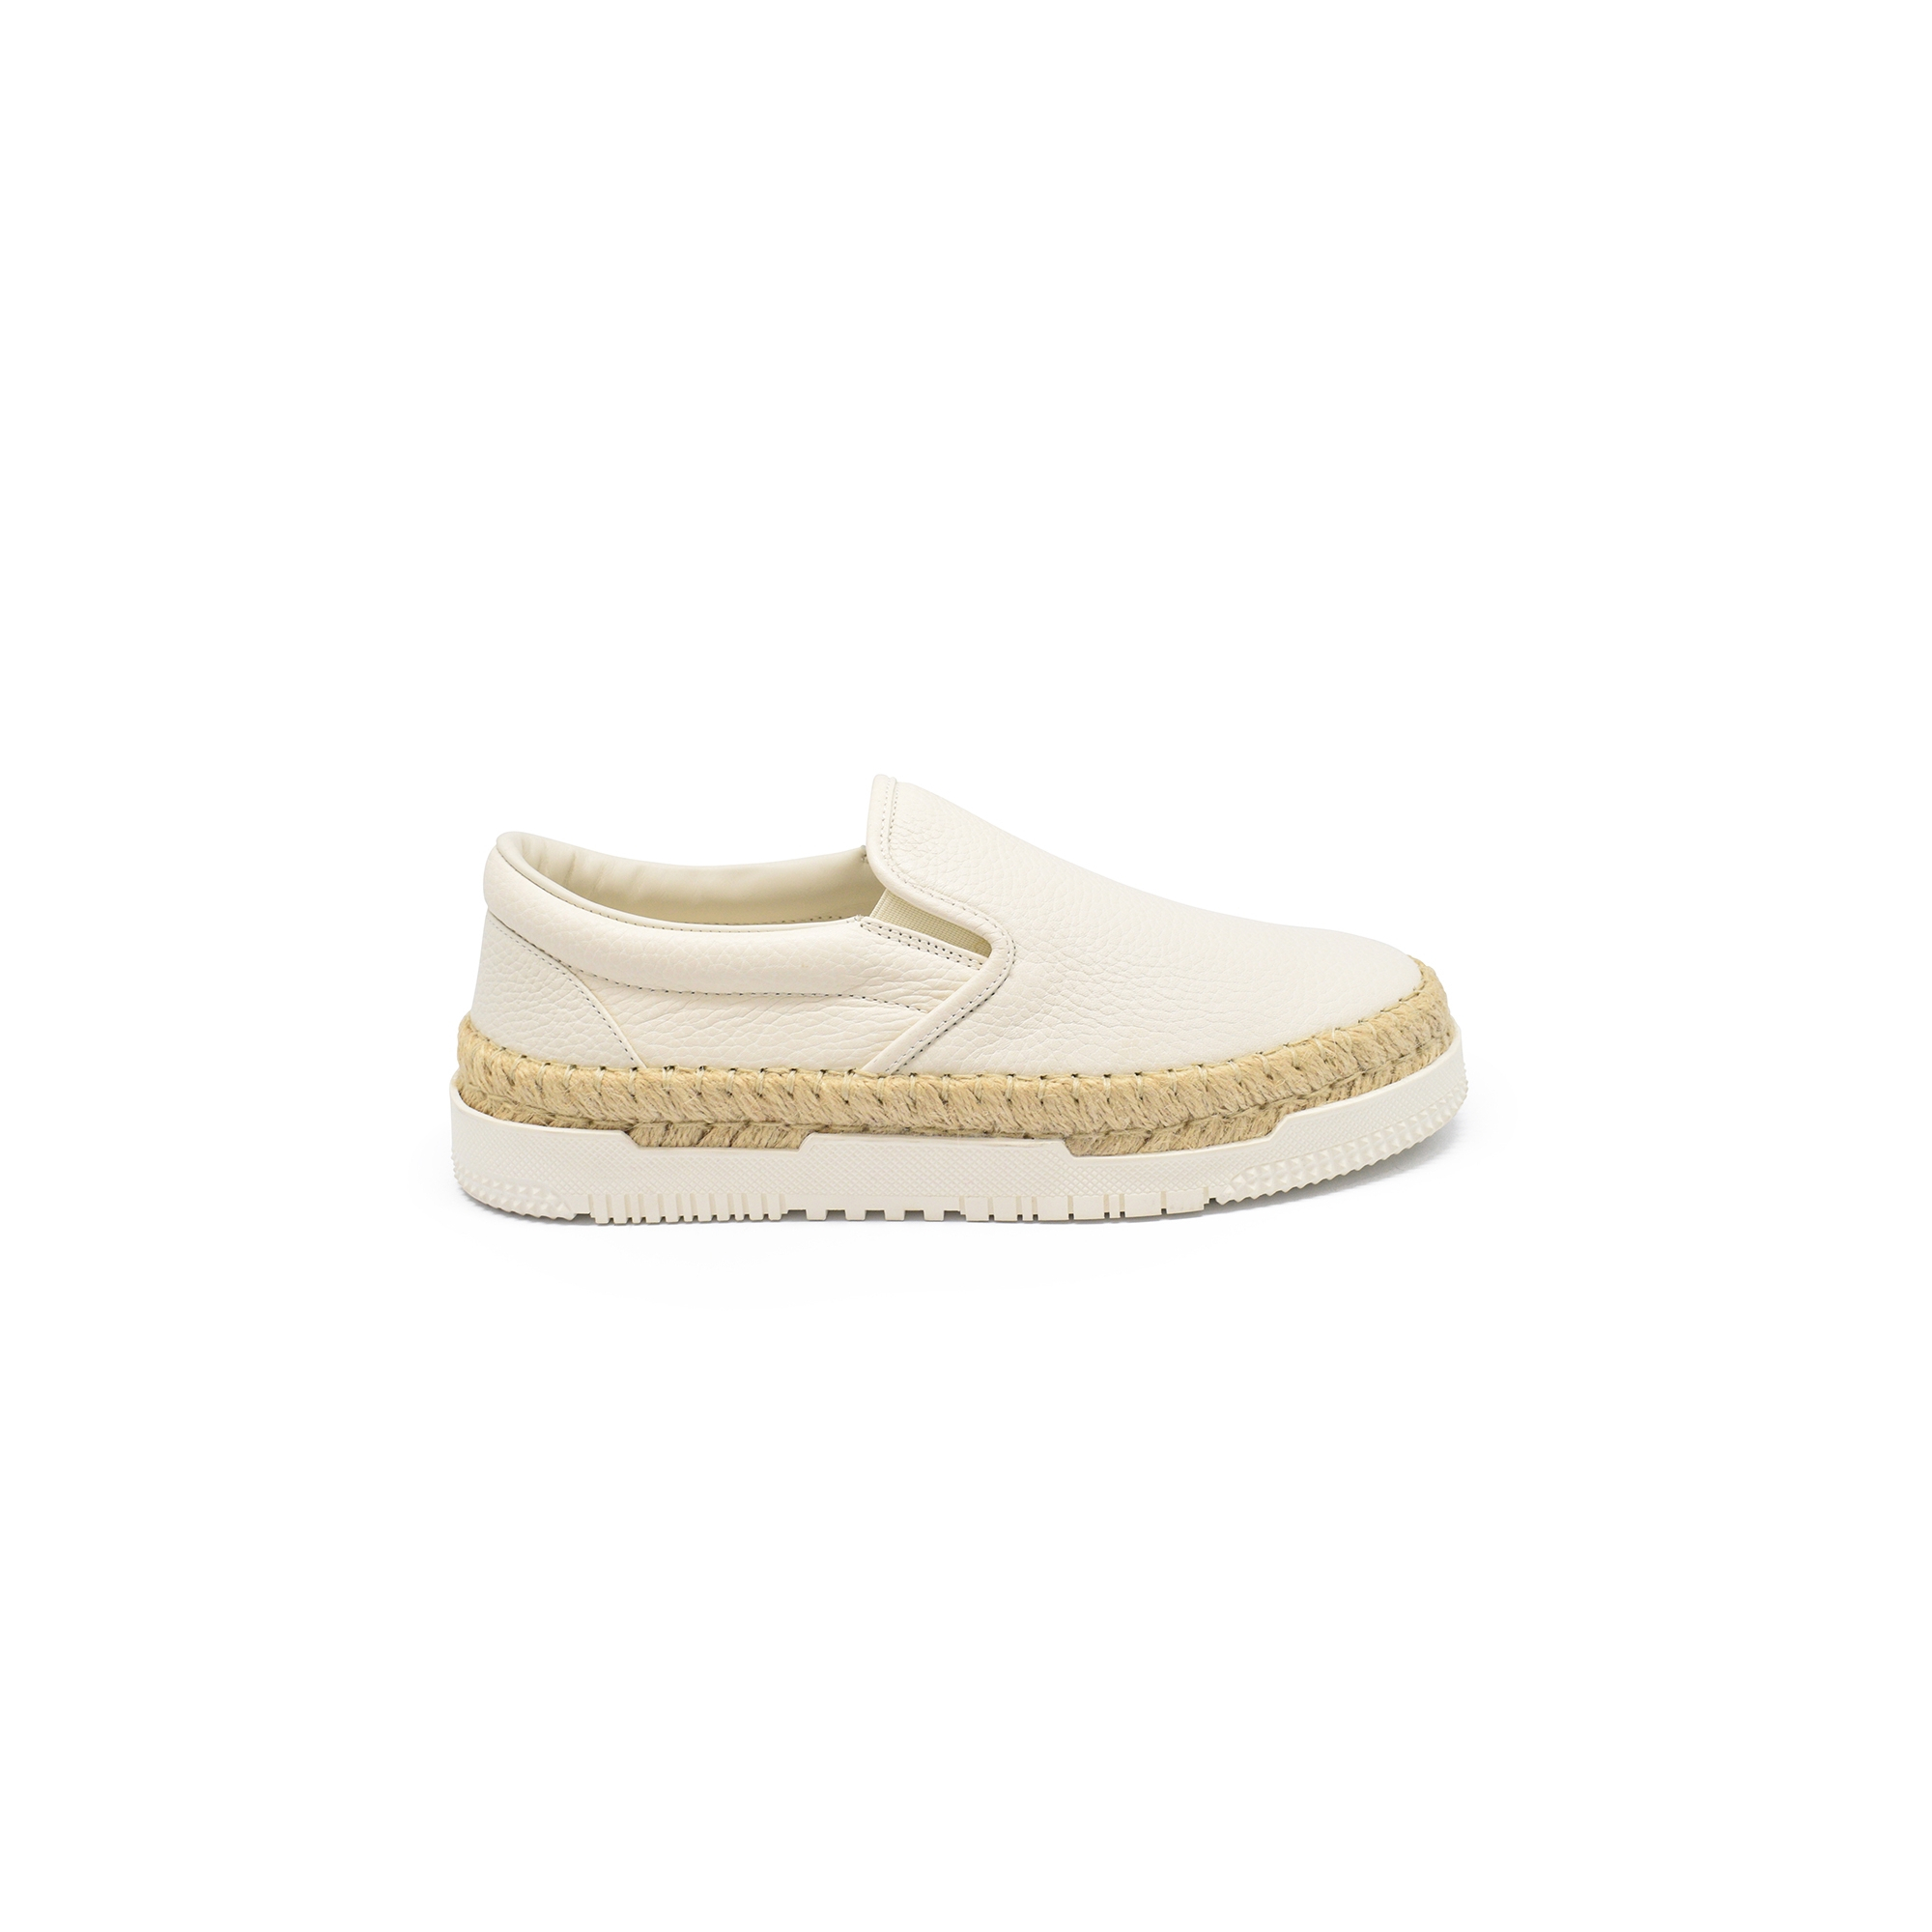 Valentino slip-on sneakers in beige grained leather with braided raffia and rubber sole